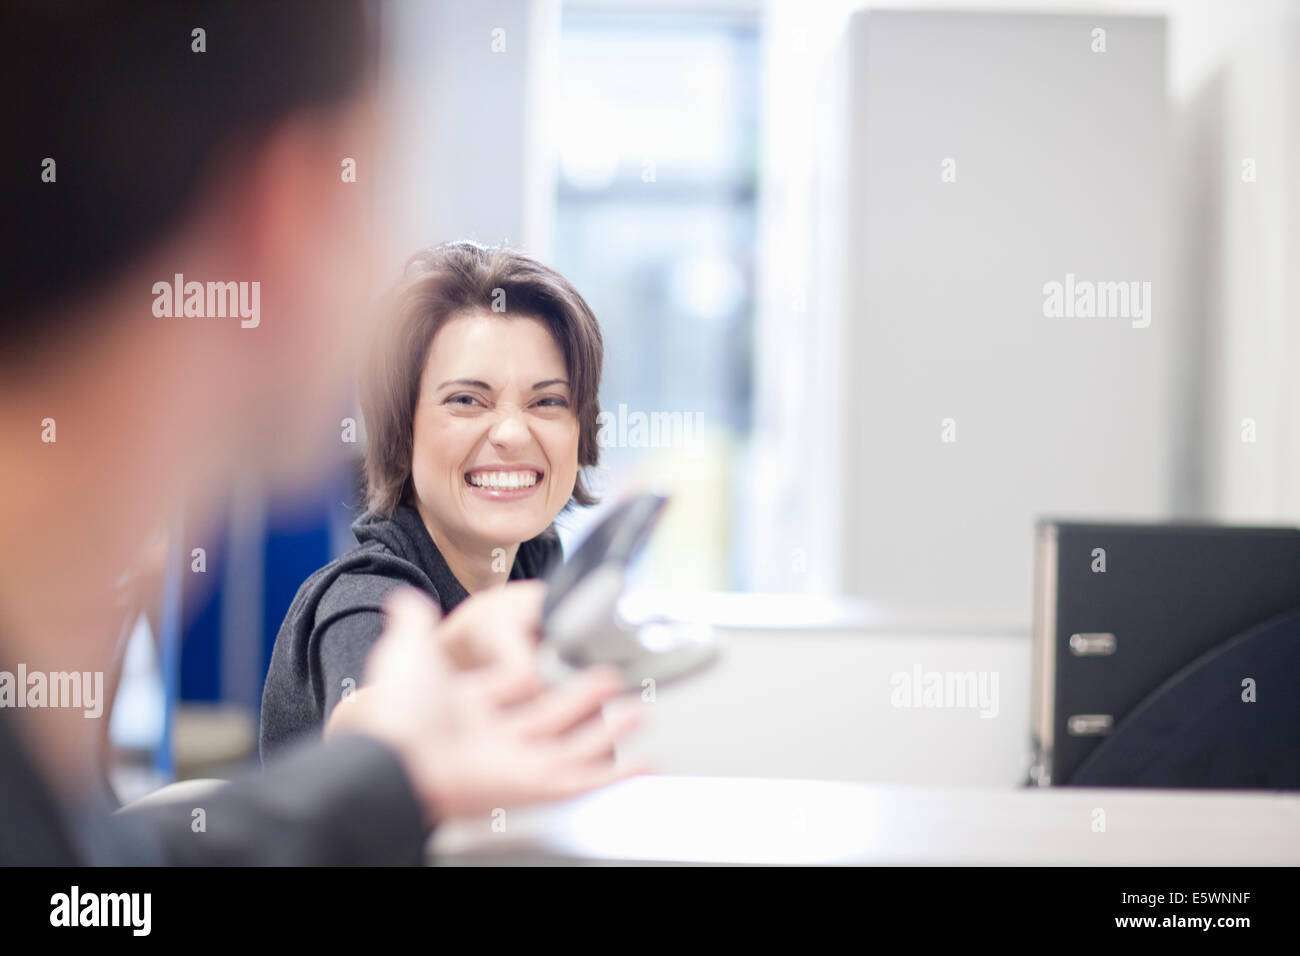 Female office worker laughing Stock Photo